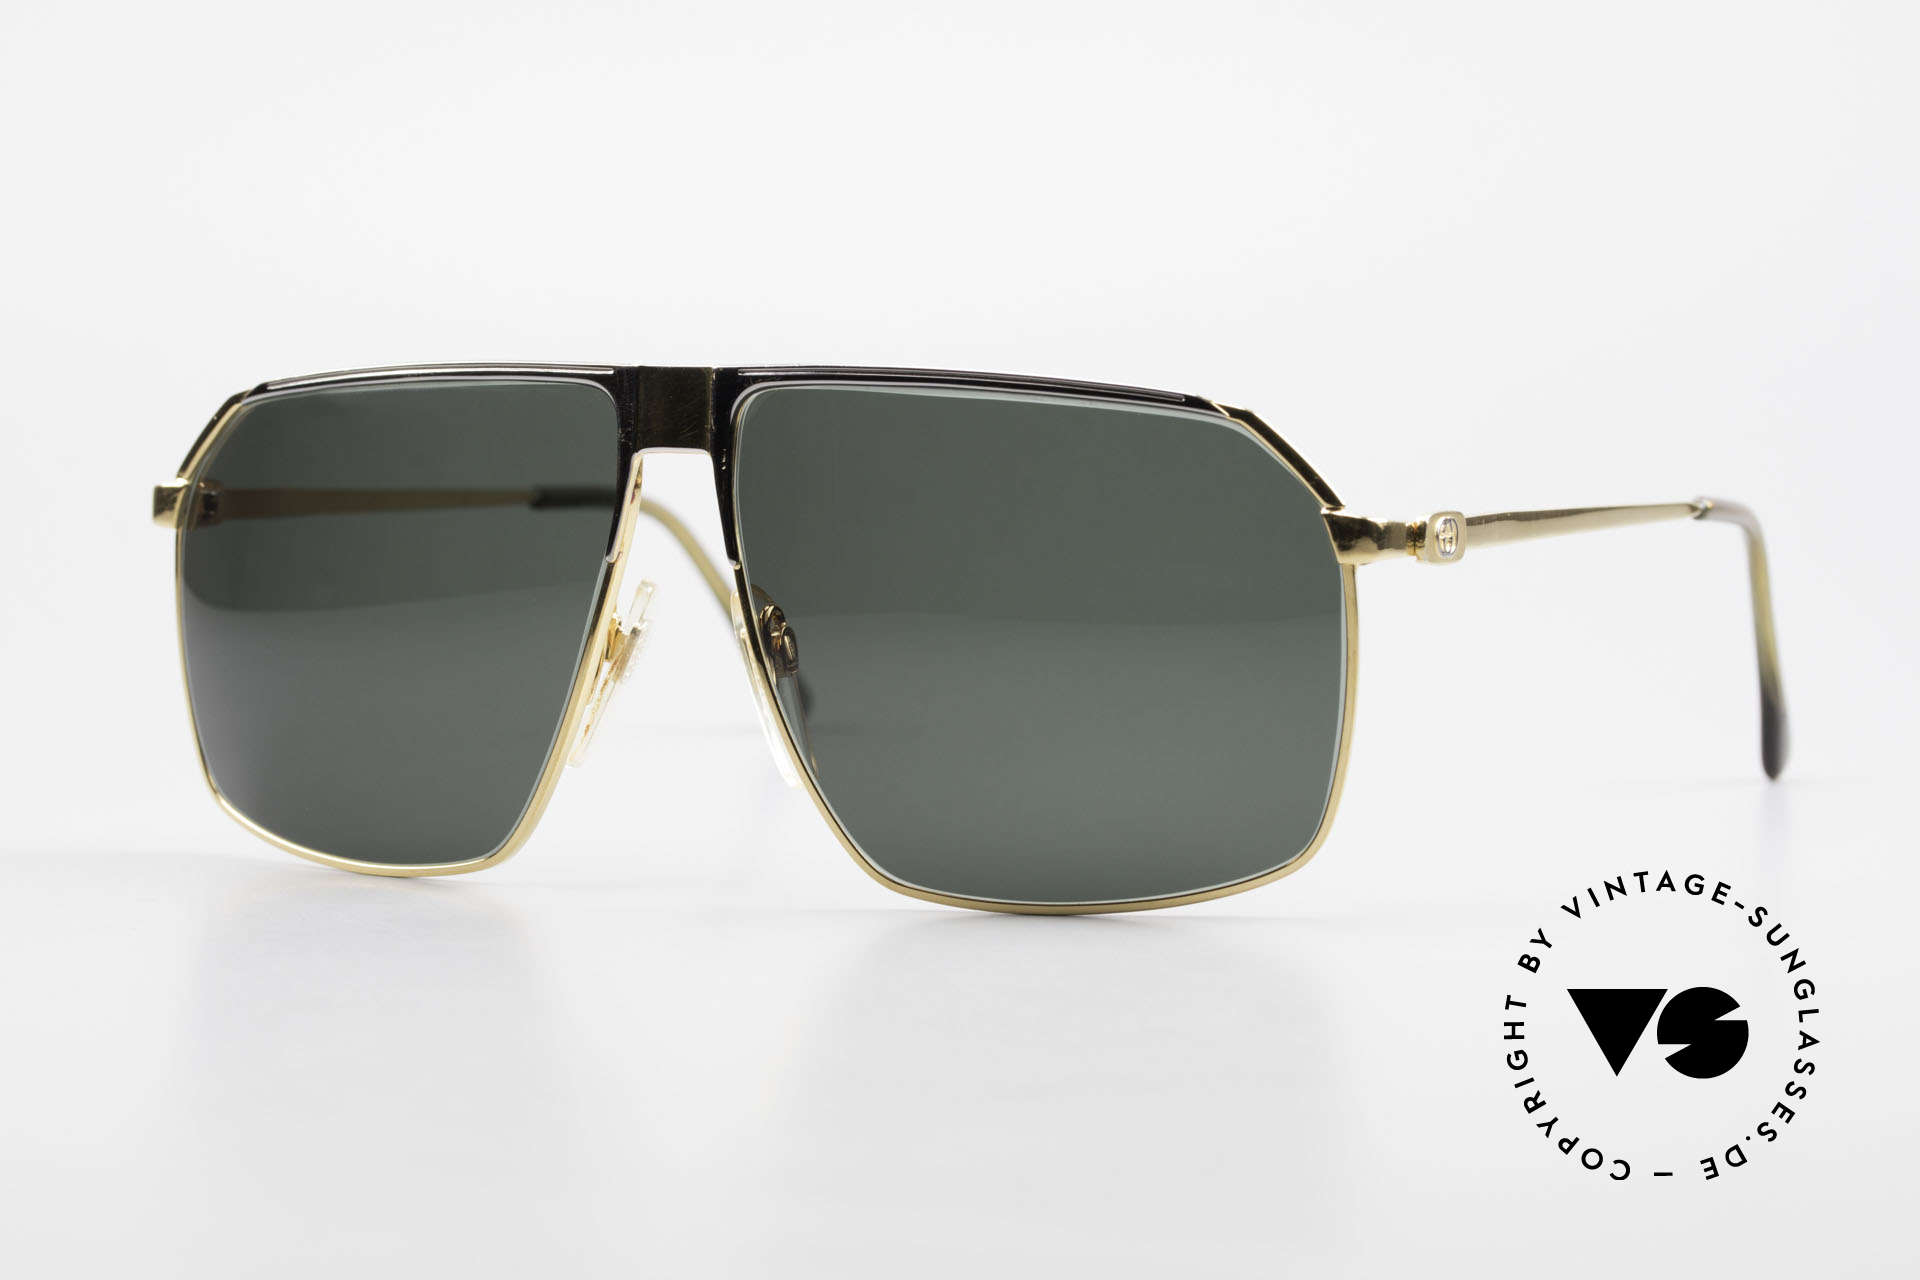 Gucci GG41 22kt Gold-Plated Sunglasses, vintage Gucci GG41 luxury shades, 22kt gold-plated, Made for Men